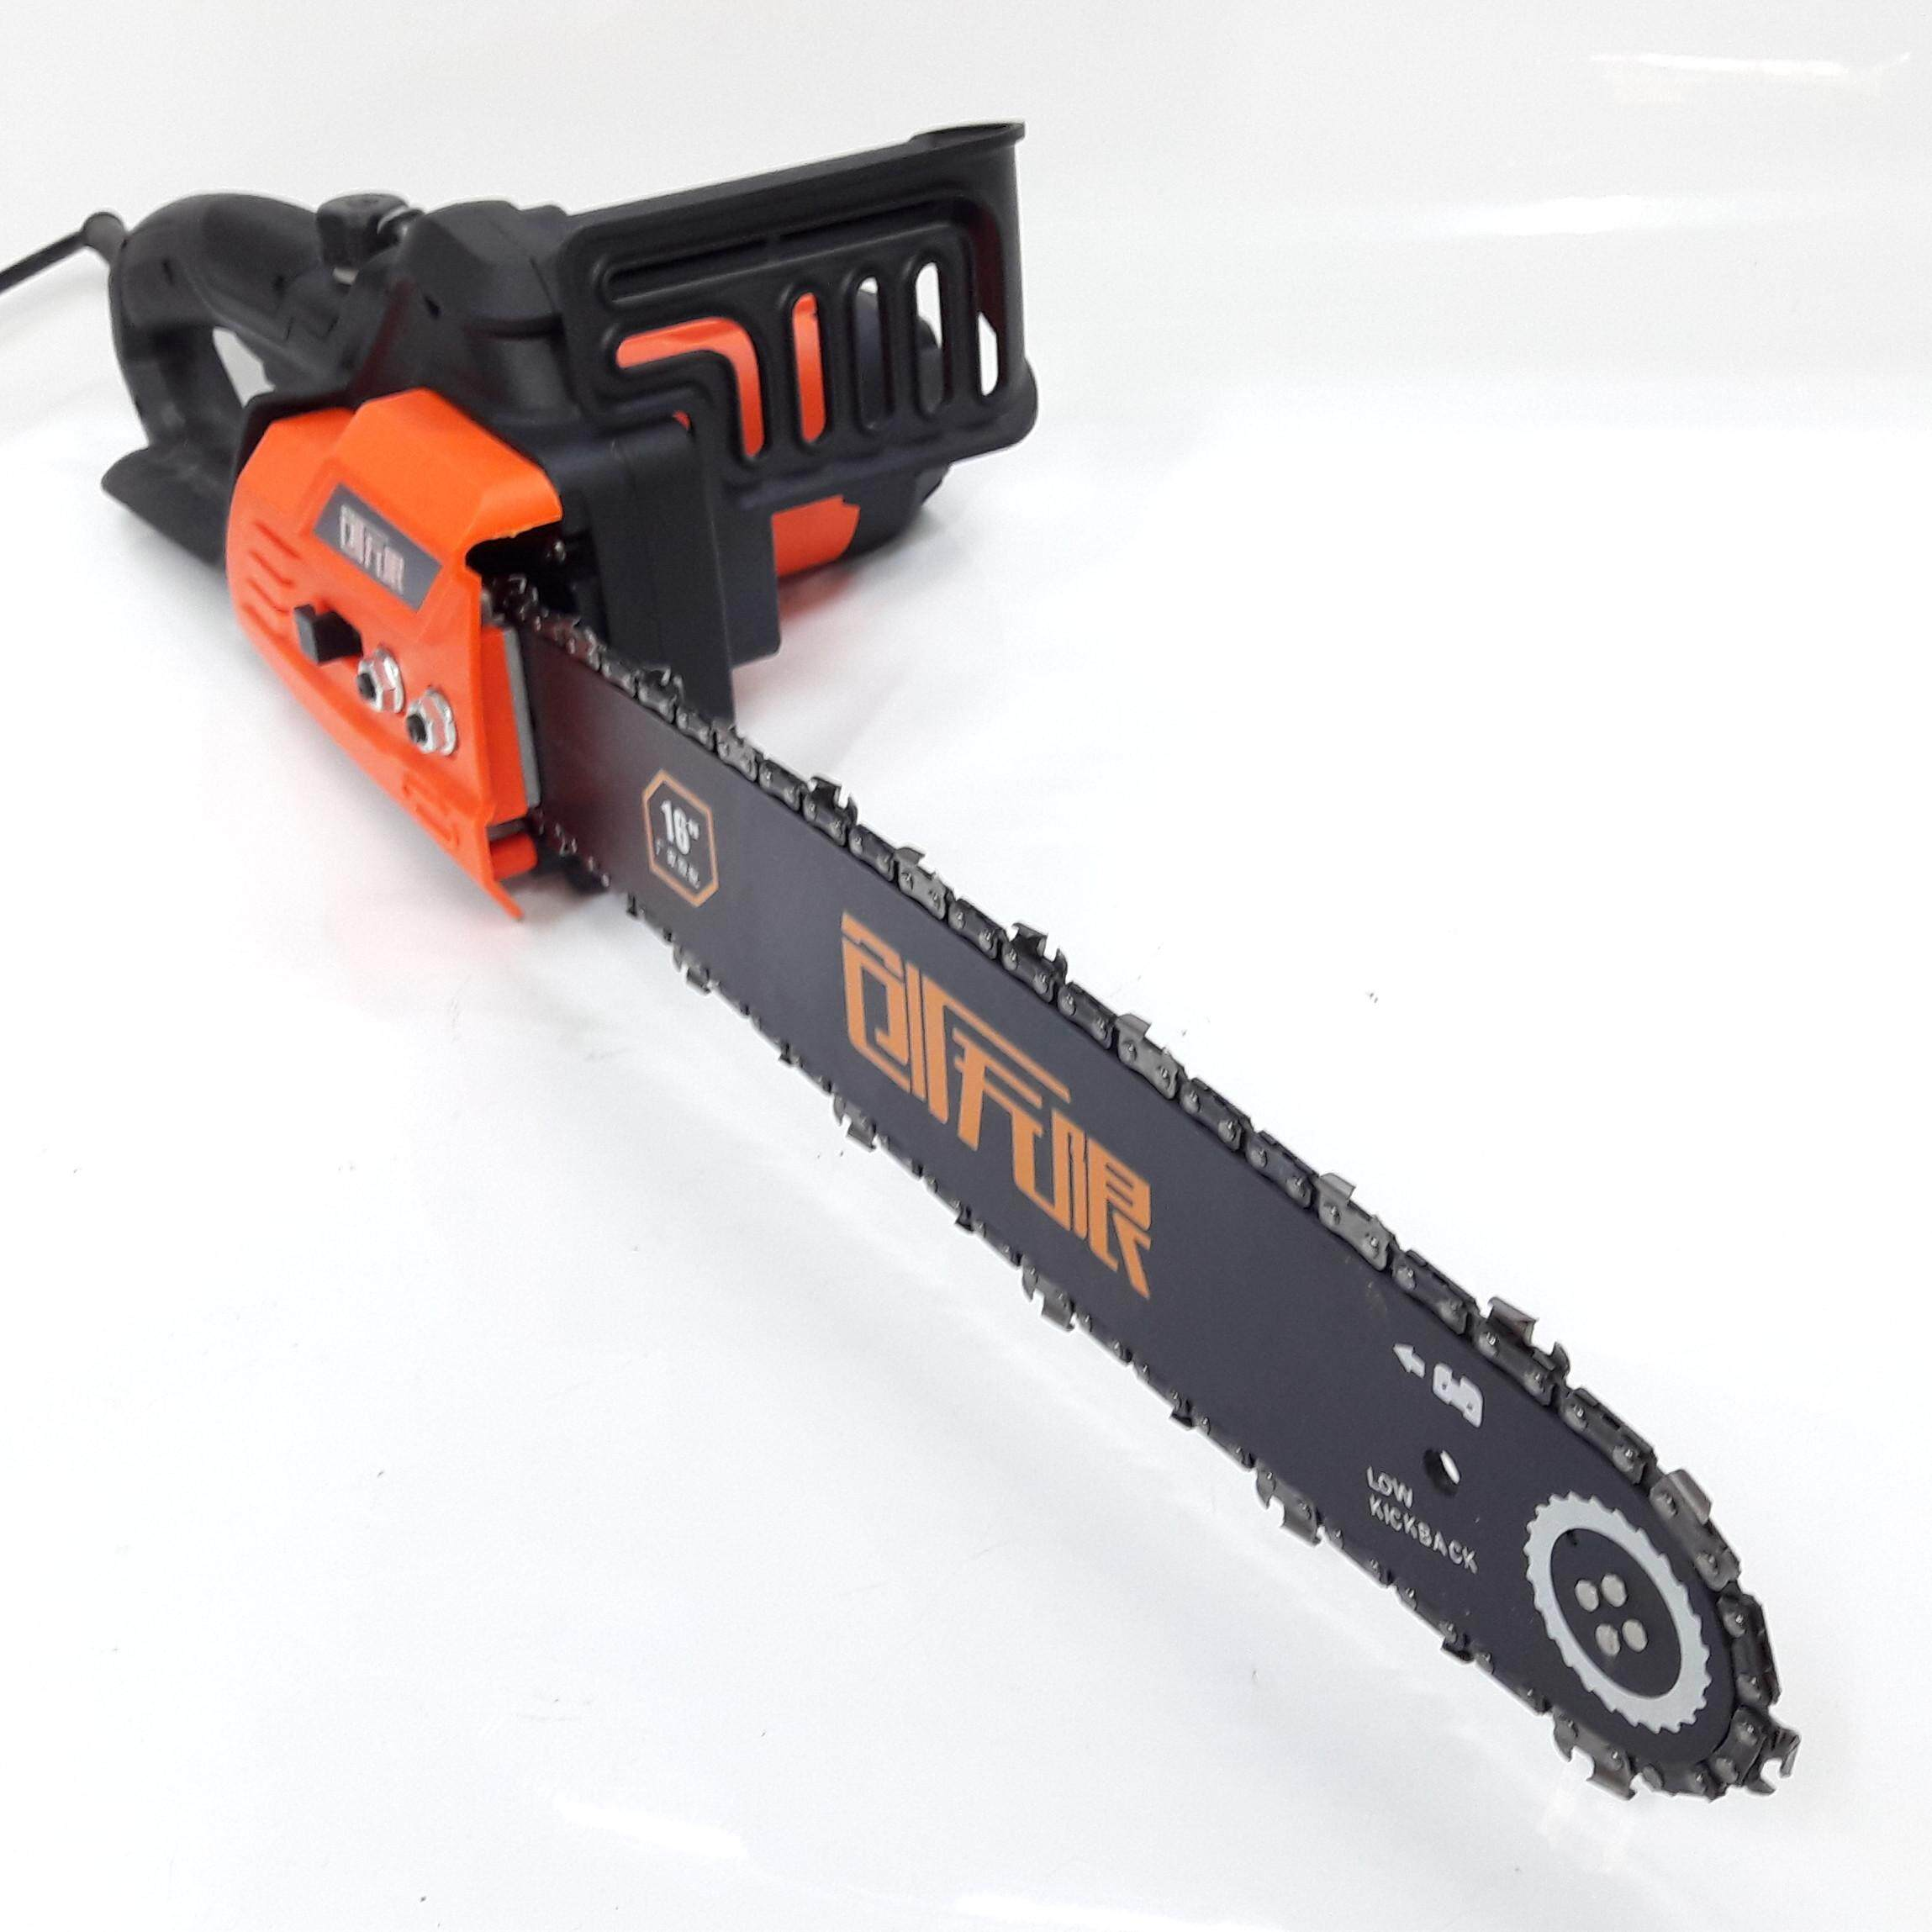 millionhardware - 16  405mm1600w Electric Chain Saw / Chainsaw Auto Adjustable